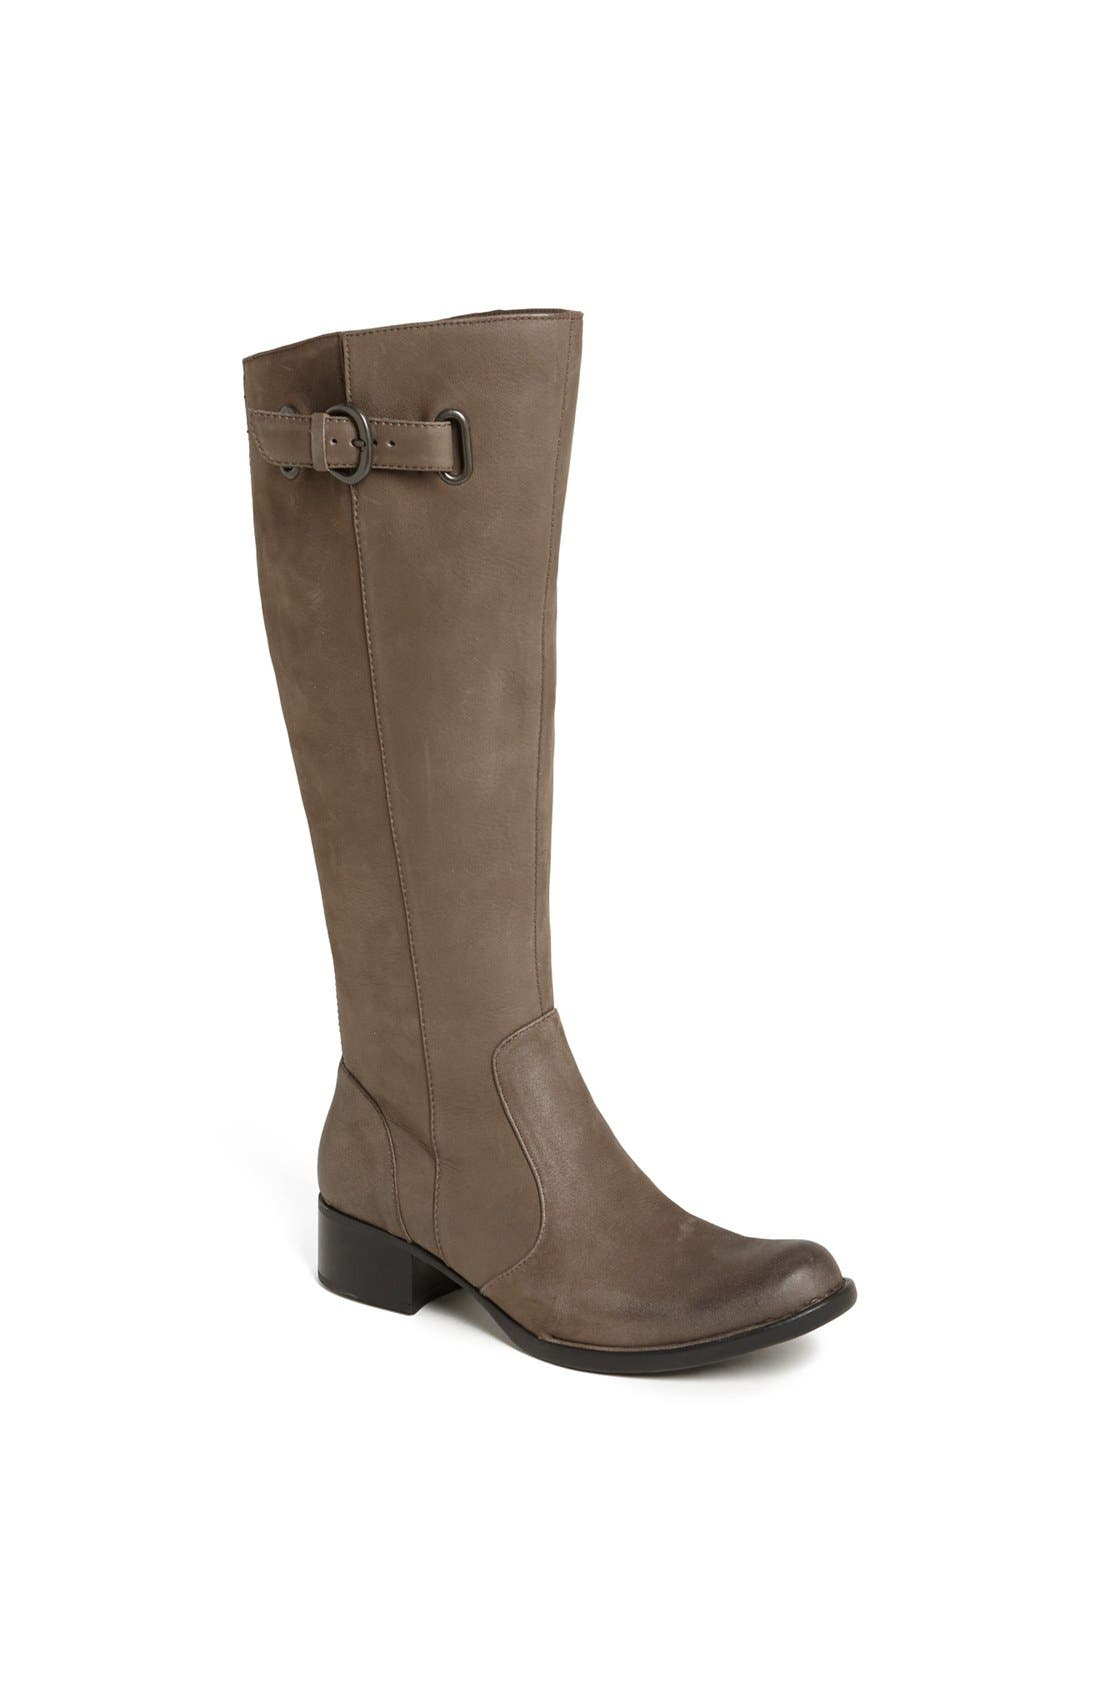 Alternate Image 1 Selected - Crown by Børn 'Roxie' Boot (Women) (Nordstrom Exclusive)